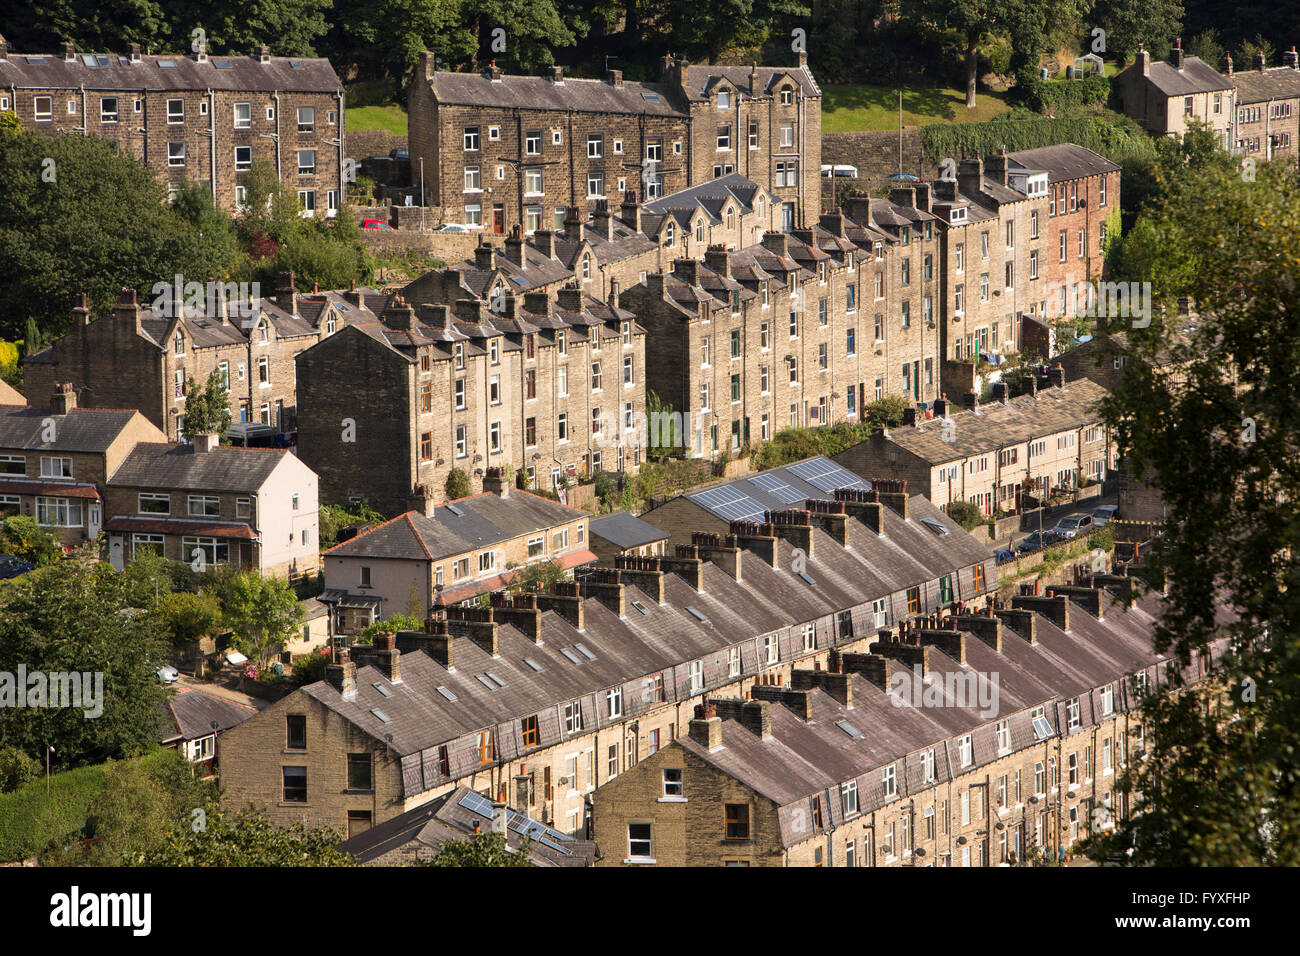 UK, England, Yorkshire, Calderdale, Hebden Bridge, five storey, flying freehold 'upstairs downstairs' houses - Stock Image